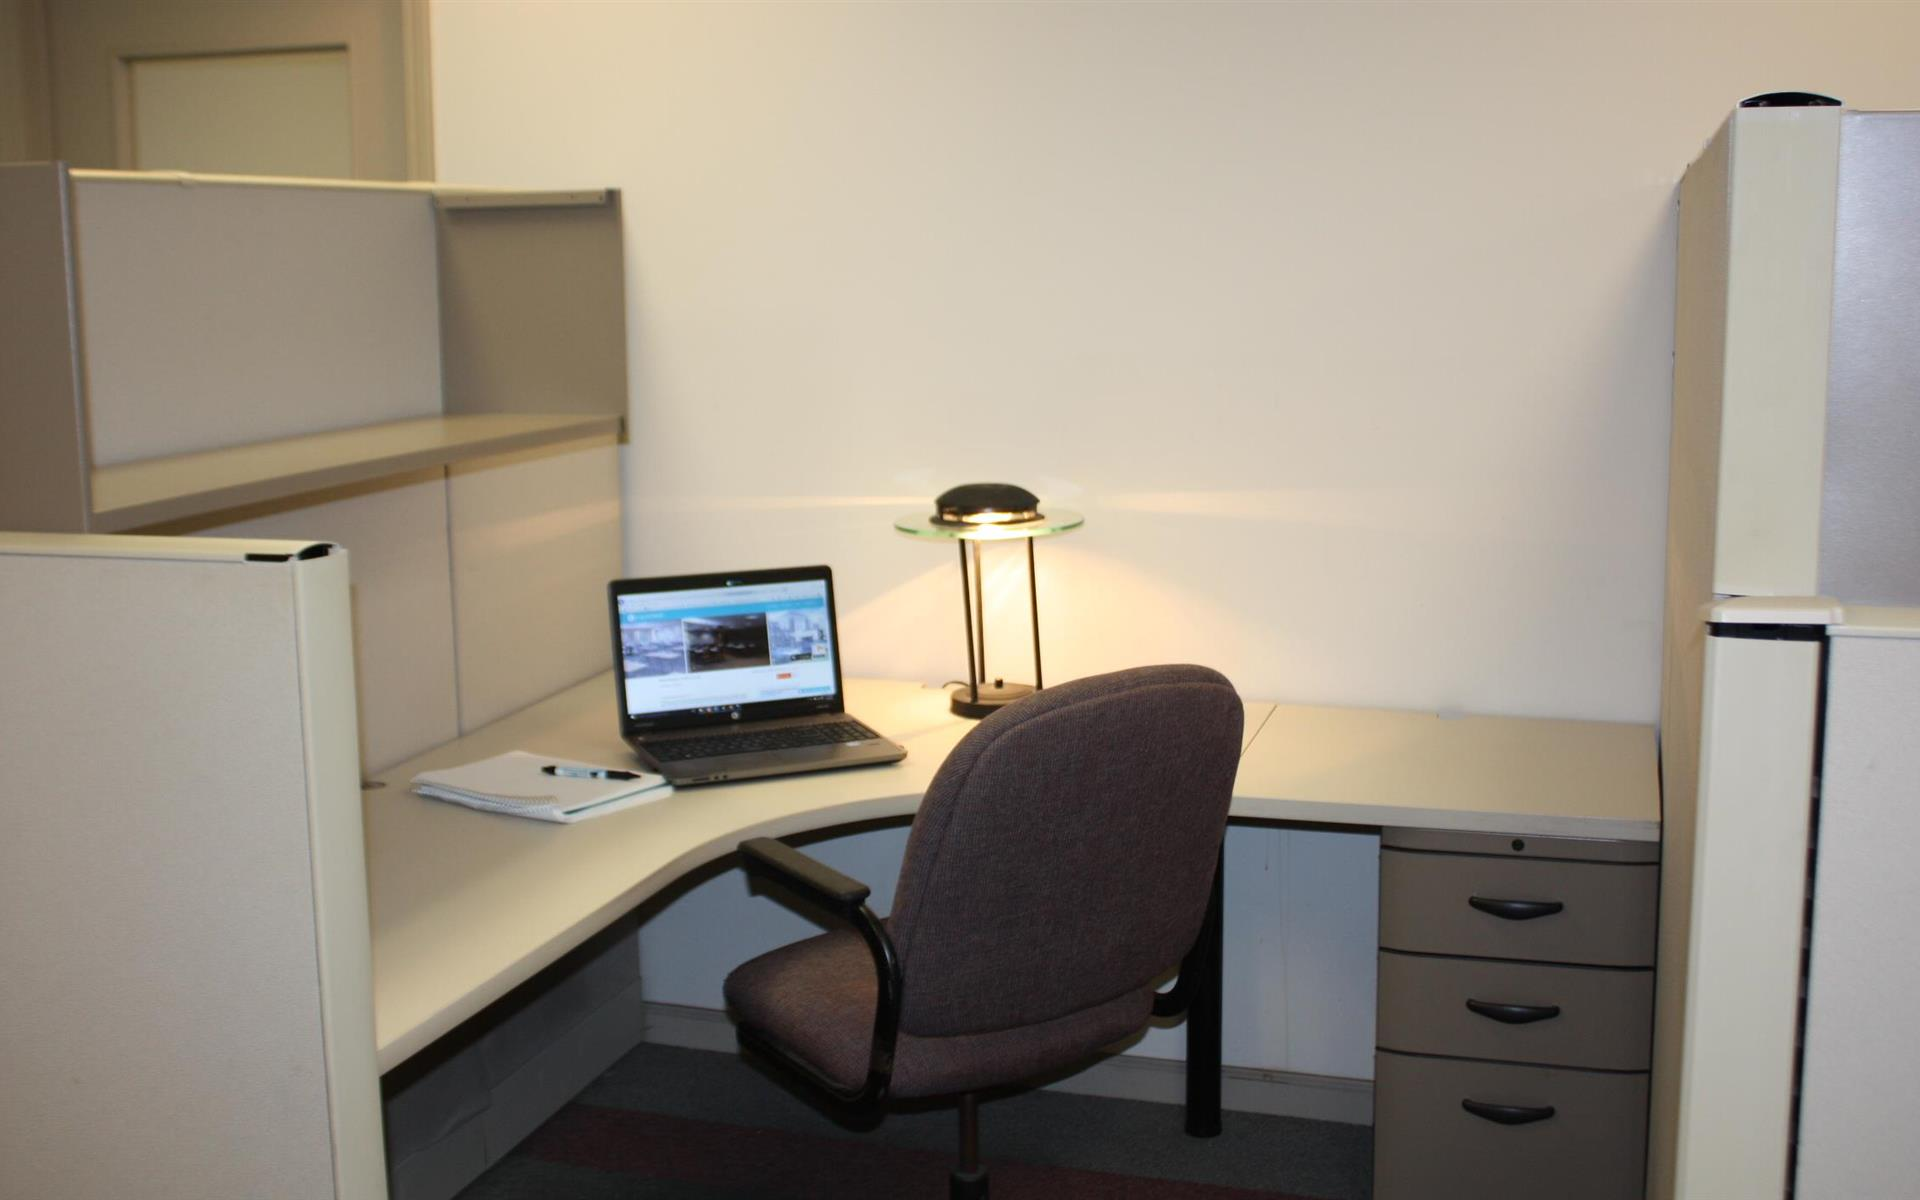 Offices and Coworking in Central NJ - Metuchen, NJ - Private Desk in Collaborative Setting